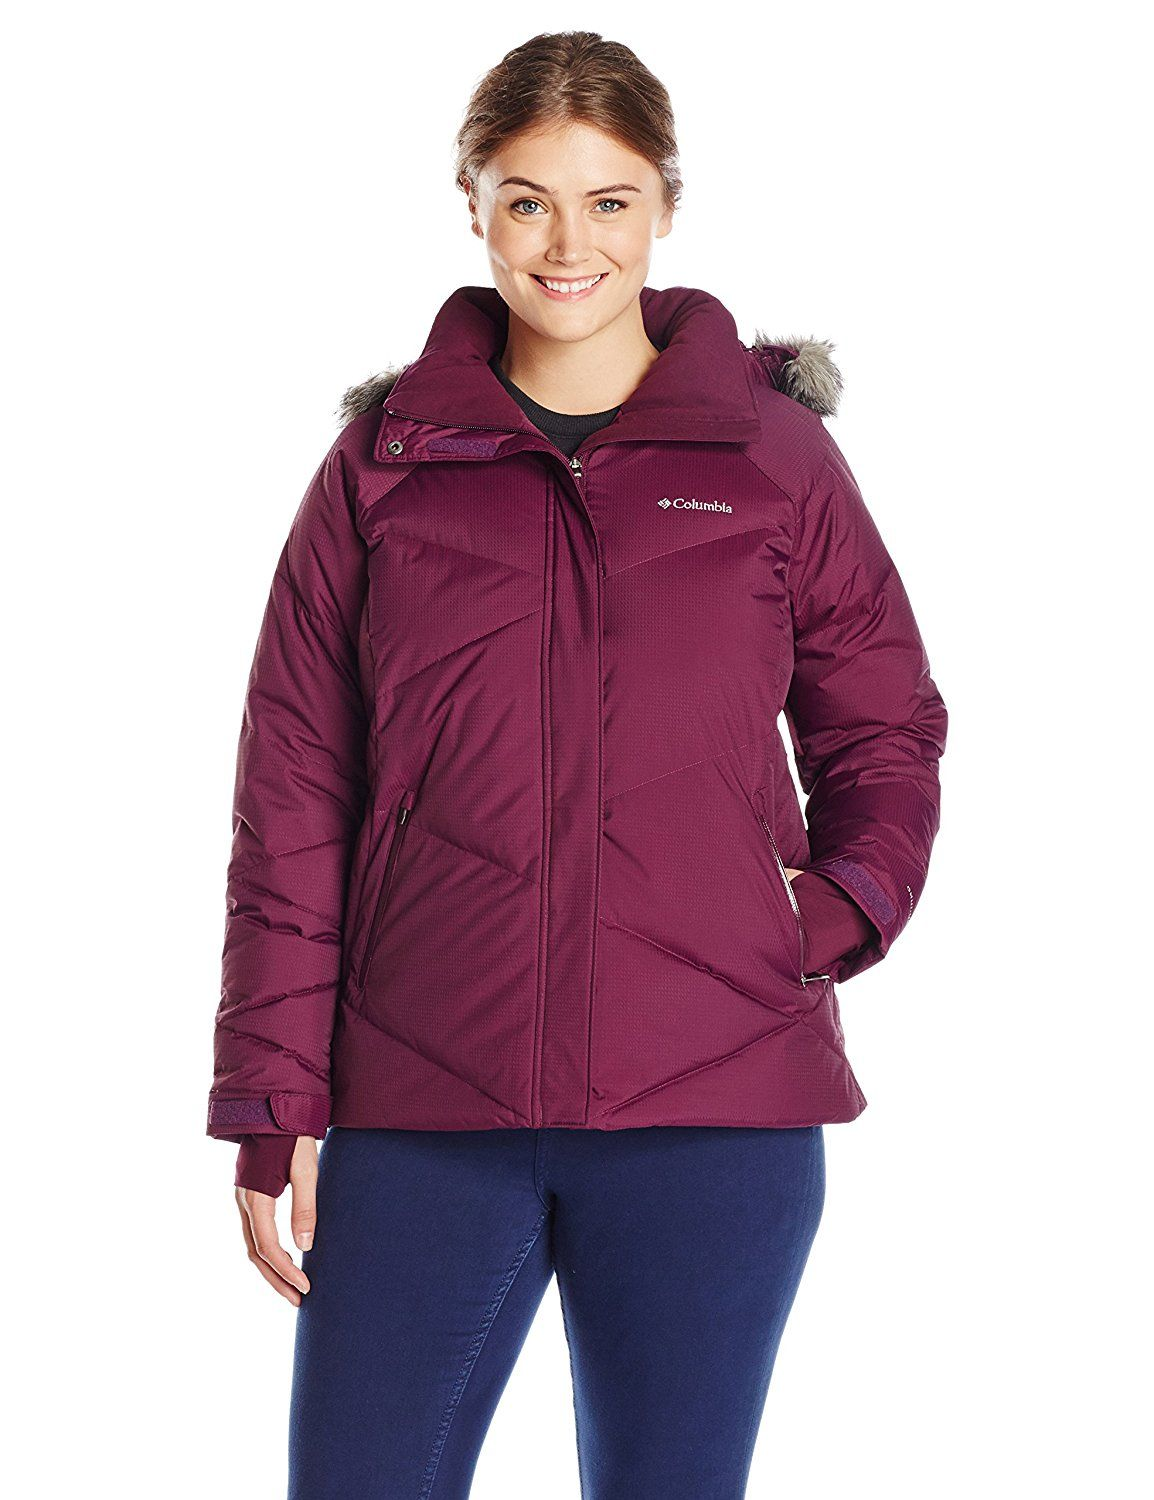 d3701577182fa Columbia Women s Plus Size Lay D Down Jacket    This is an Amazon Affiliate  link. Learn more by visiting the image link.